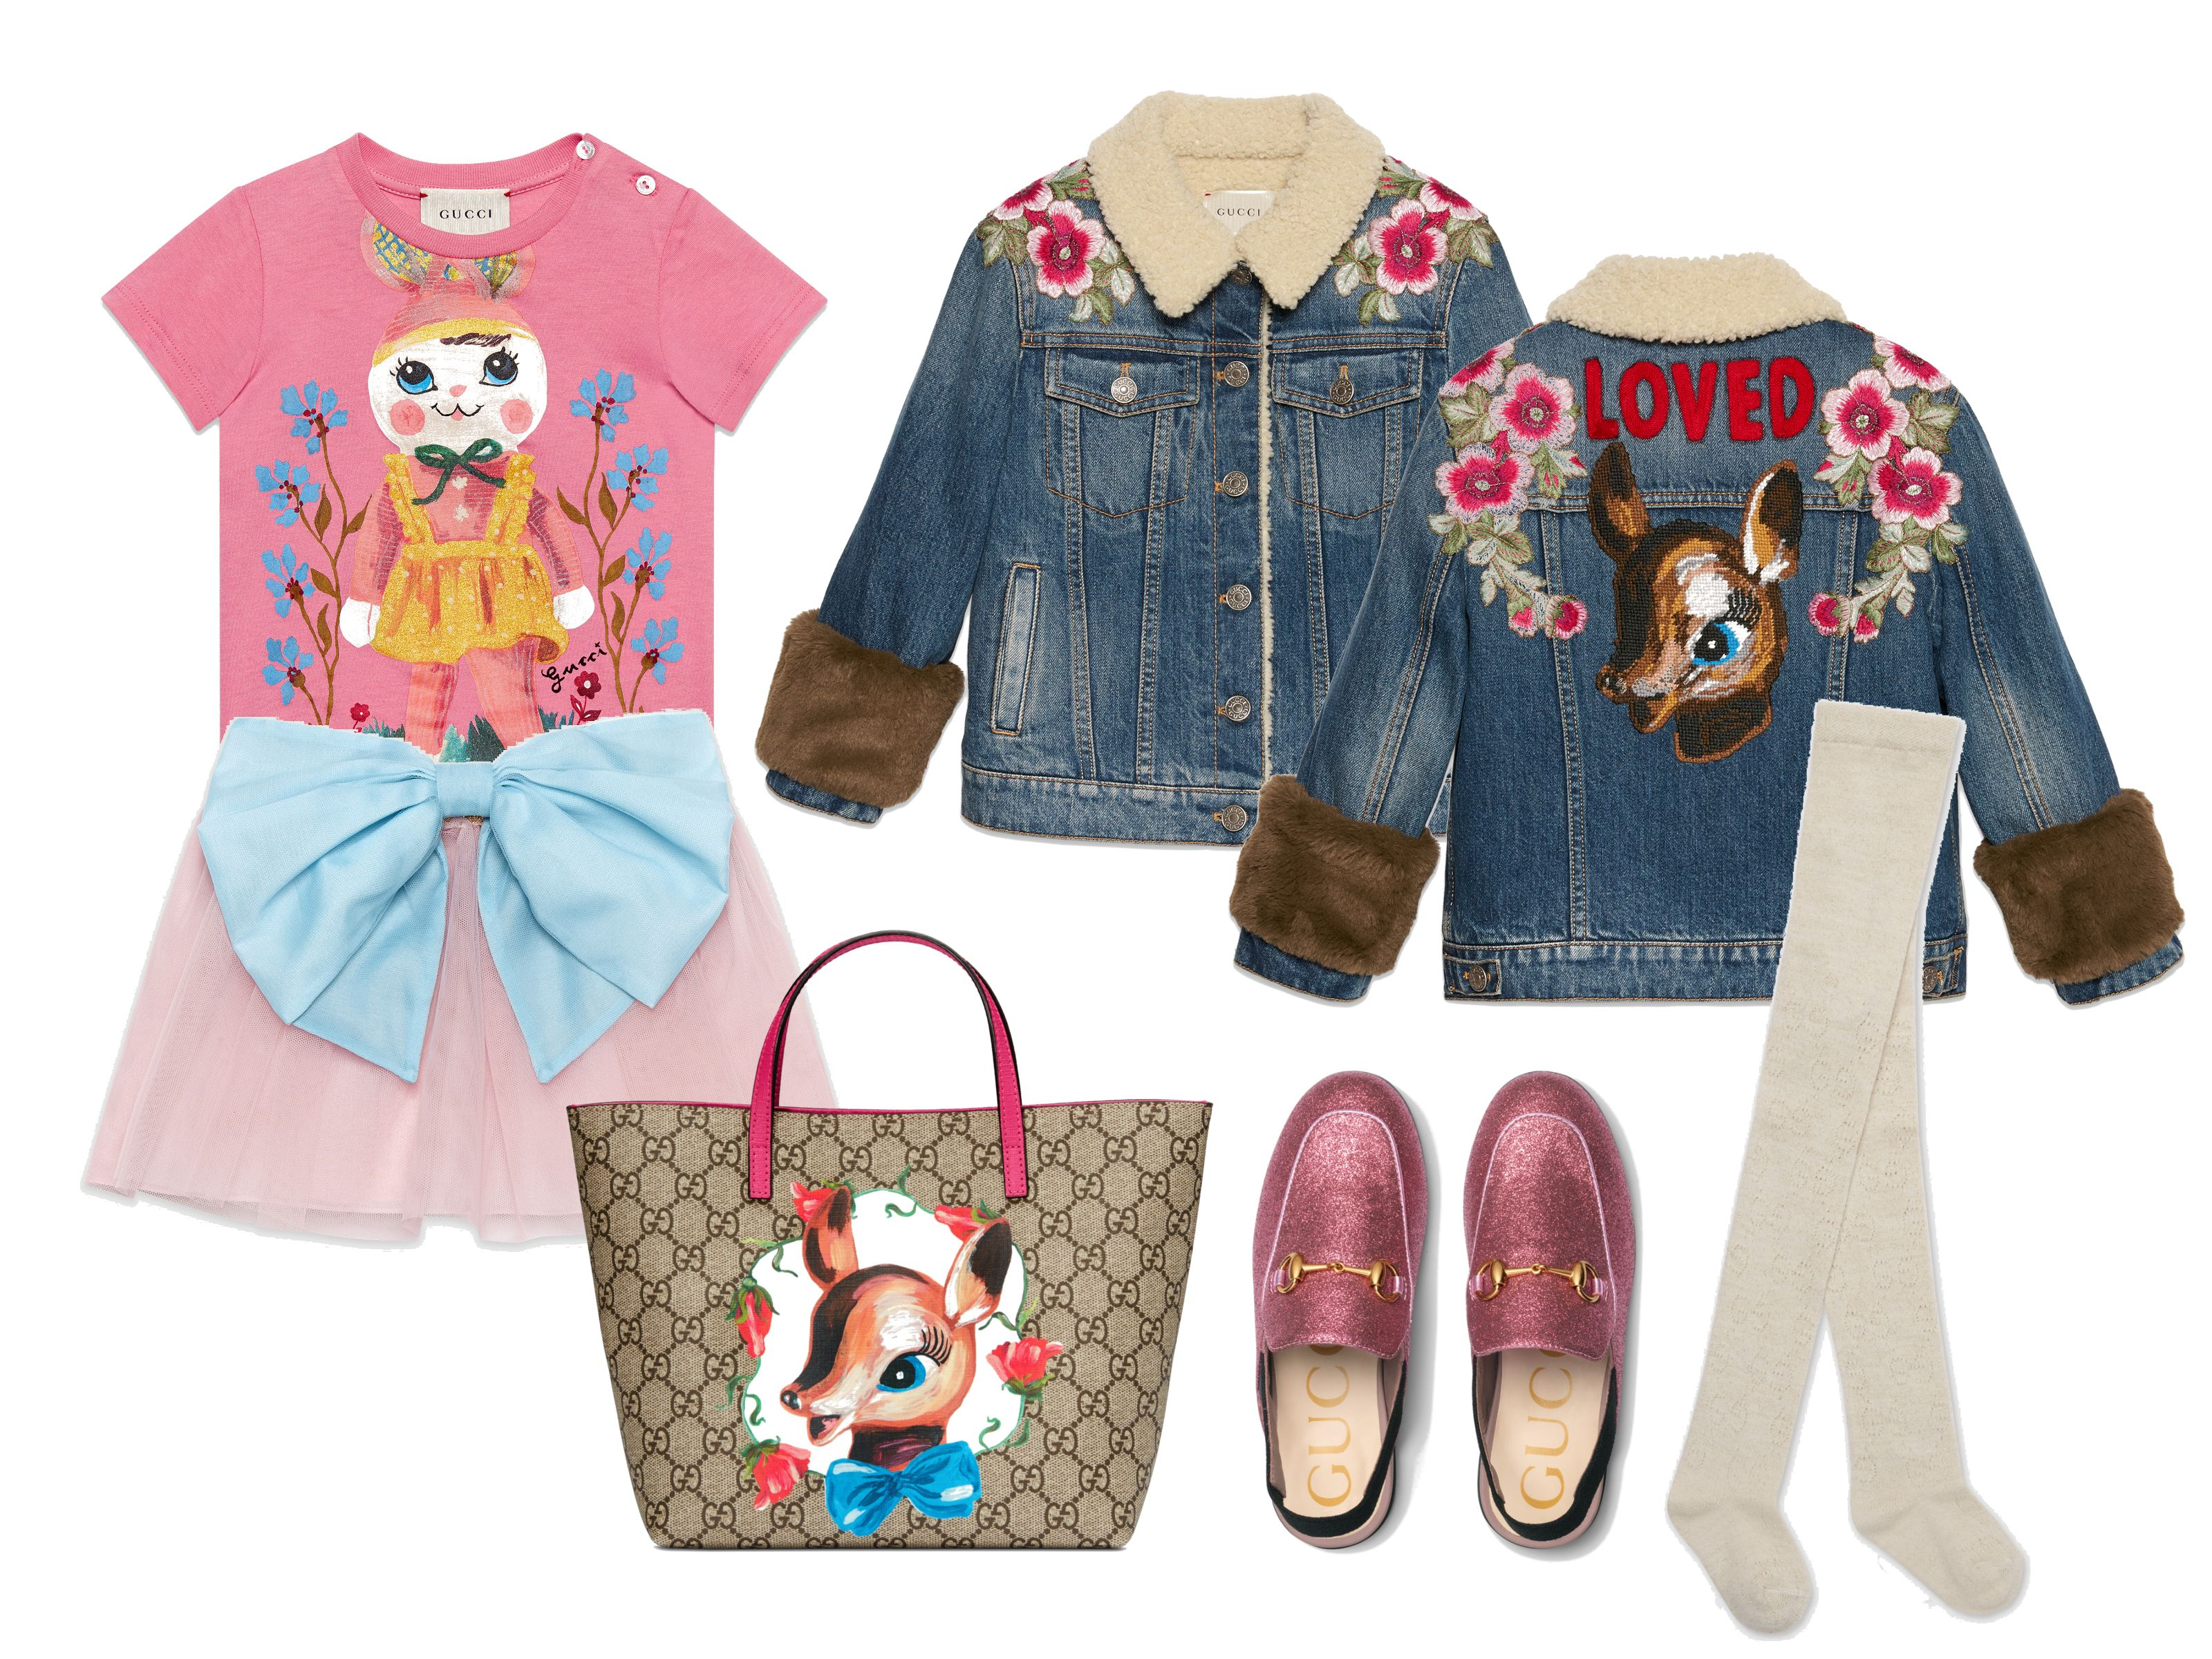 e376d7843 Gucci Set #9 (for Little Girls) Items: Baby T-shirt with doll print Baby tulle  skirt with bow Children's Princetown glitter slipper Children's embroidered  ...